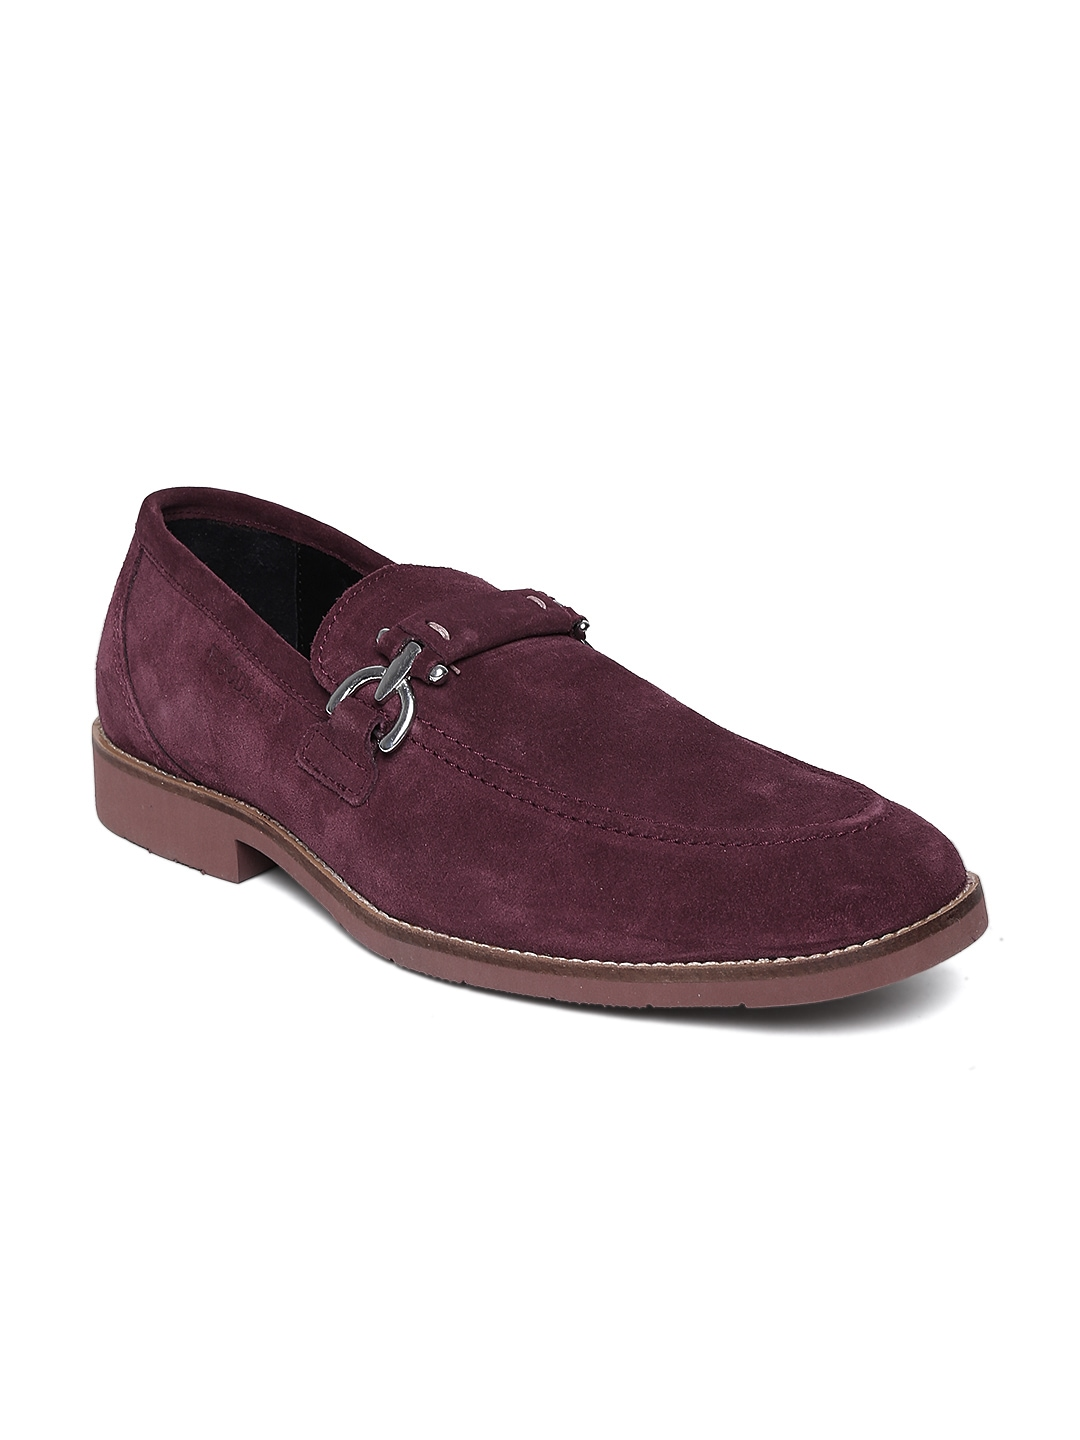 myntra woodland burgundy suede casual shoes 829091